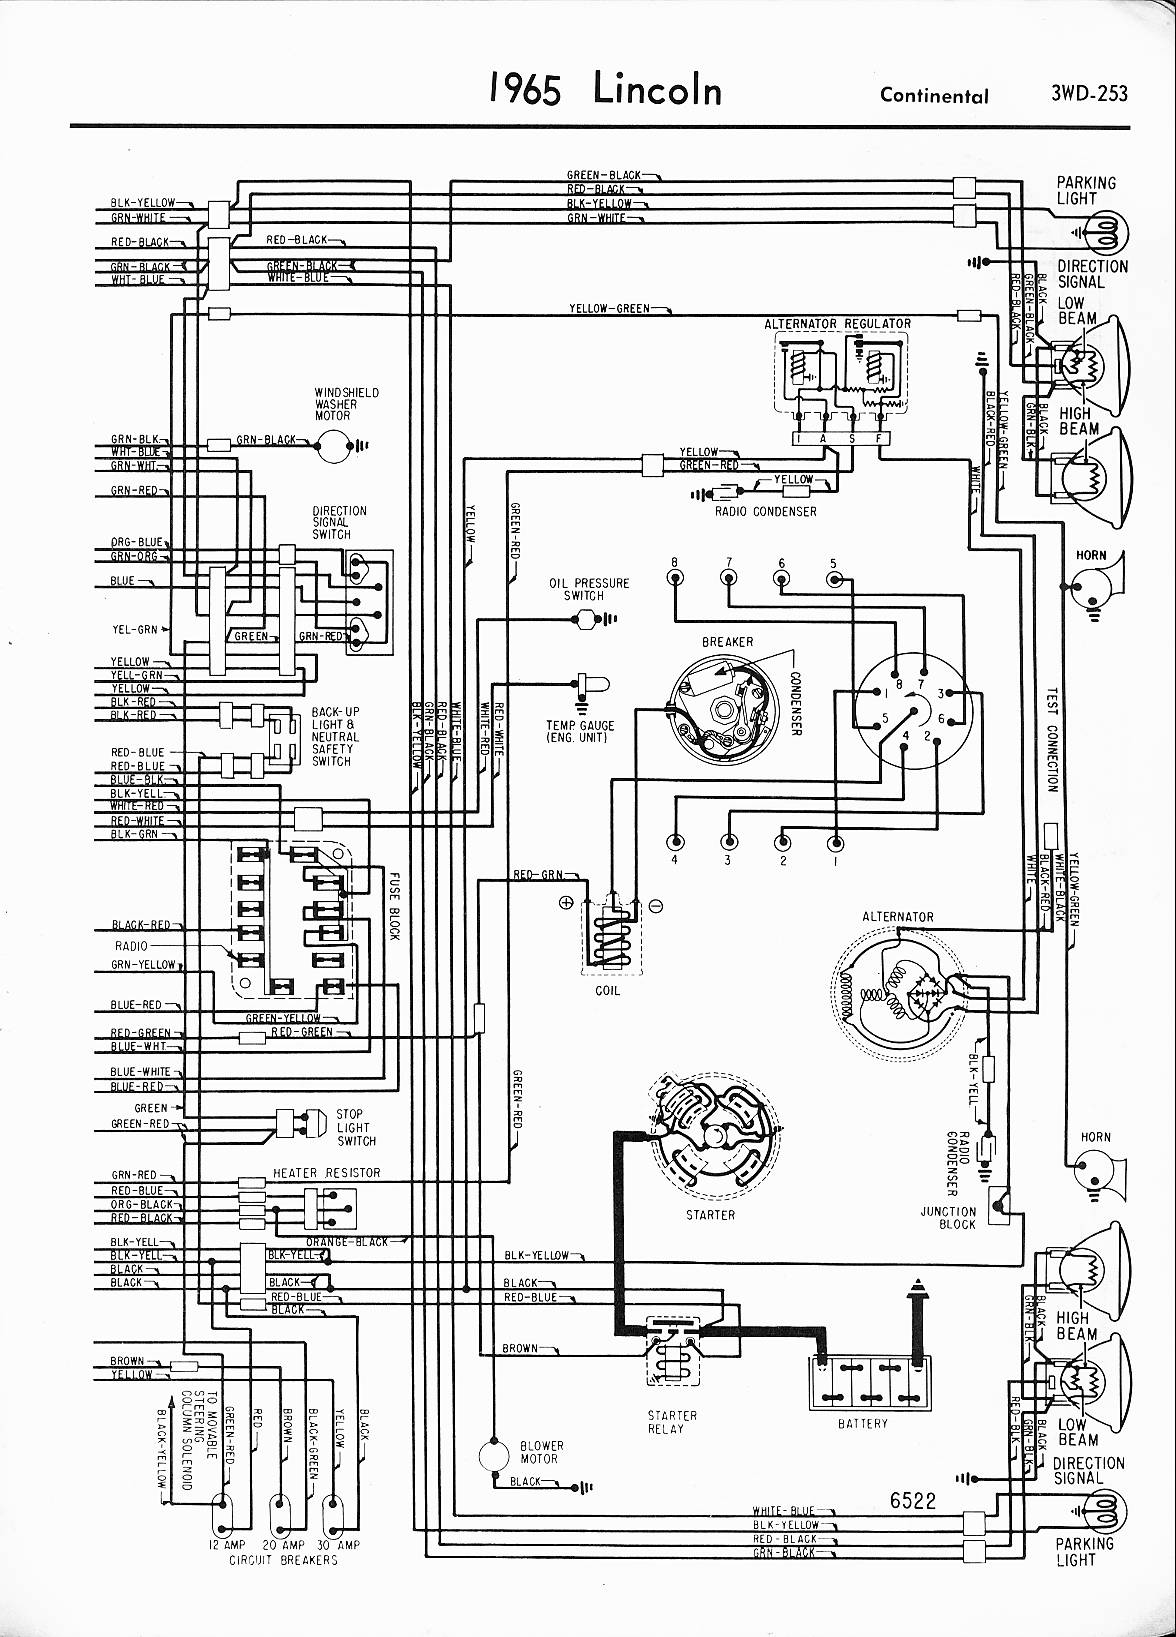 Lincoln Wiring Diagrams 1957 1965 Pontiac Ac Diagram Right Half